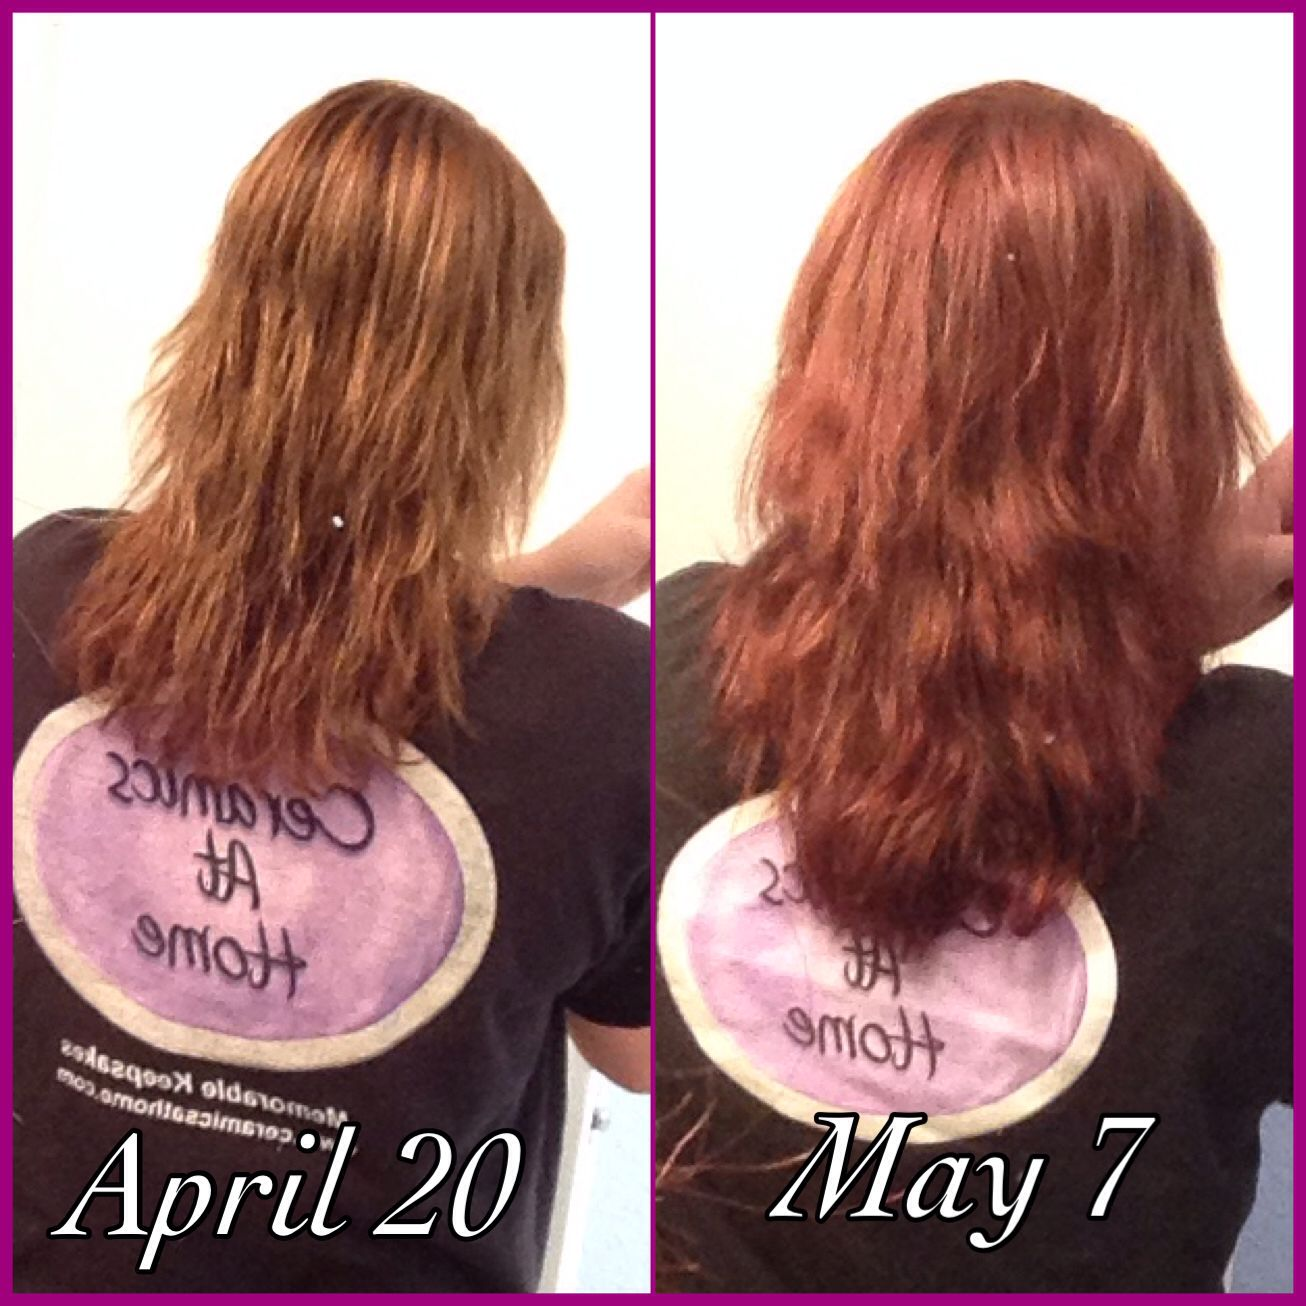 Biotin results. Before and after. Really works!! Biotin